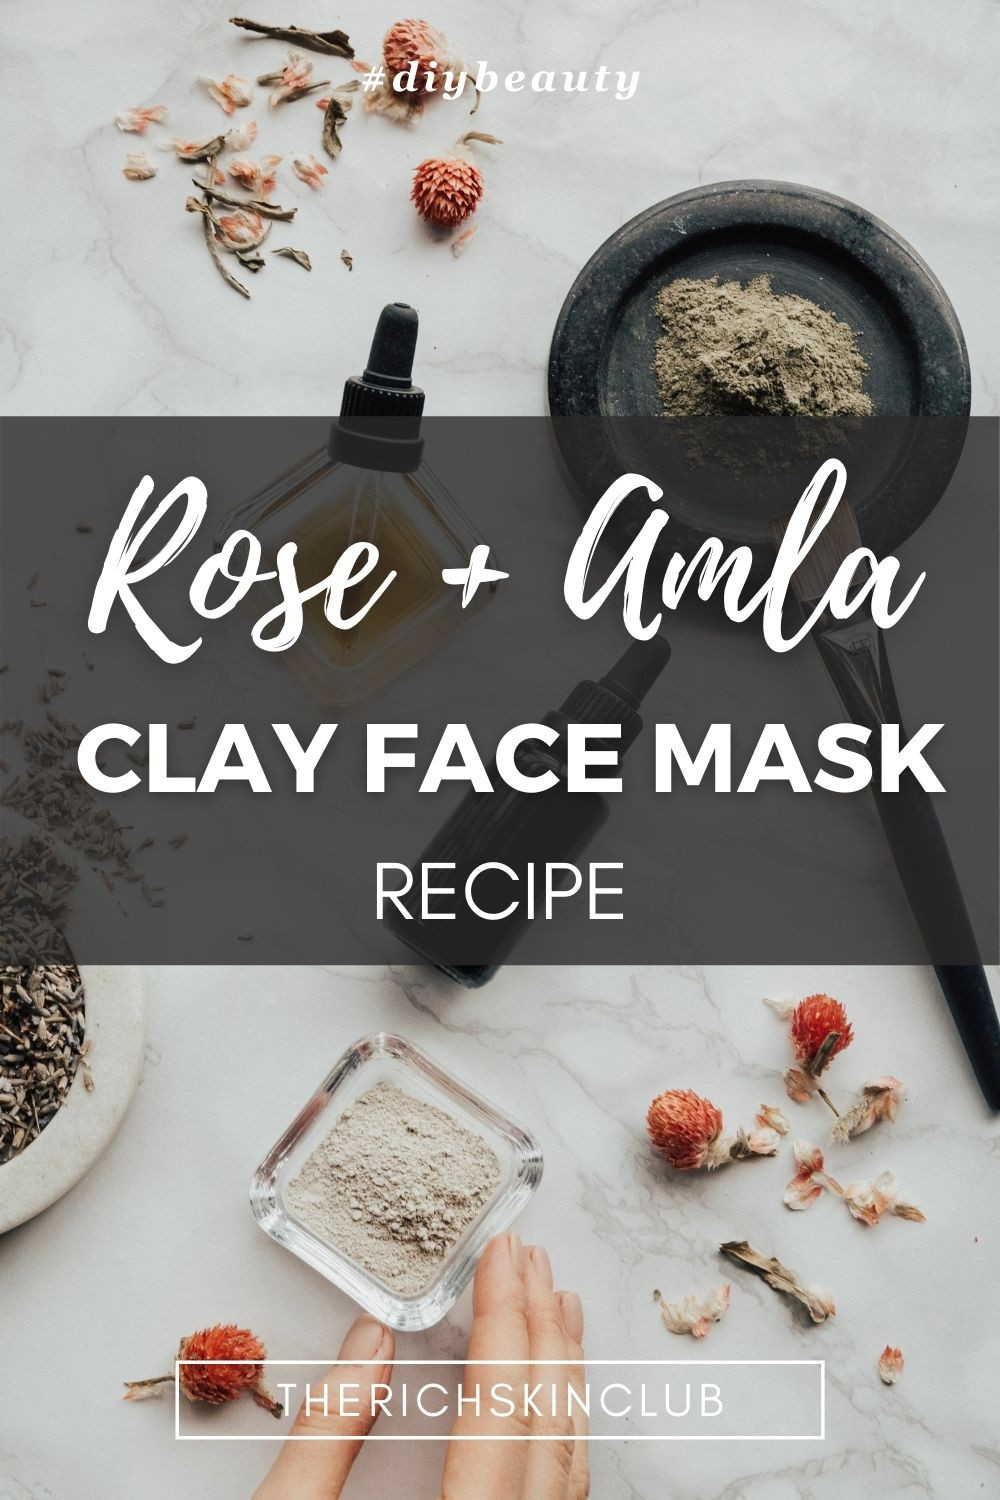 The Amazing Skin Benefits of Rassoul Clay. Click the pin to get all of the facts on rassoul clay, bentonite clay, kaolin clay for detoxing your skin. Rassoul clay has an amazing ability to draw out toxins and impurities from the skin and scalp. Get a DIY clay face mask recipe to add to your weekly facial. #clayfacemaskdiy #diydetoxfacemask #antitoxicantiaging #cleanbeauty